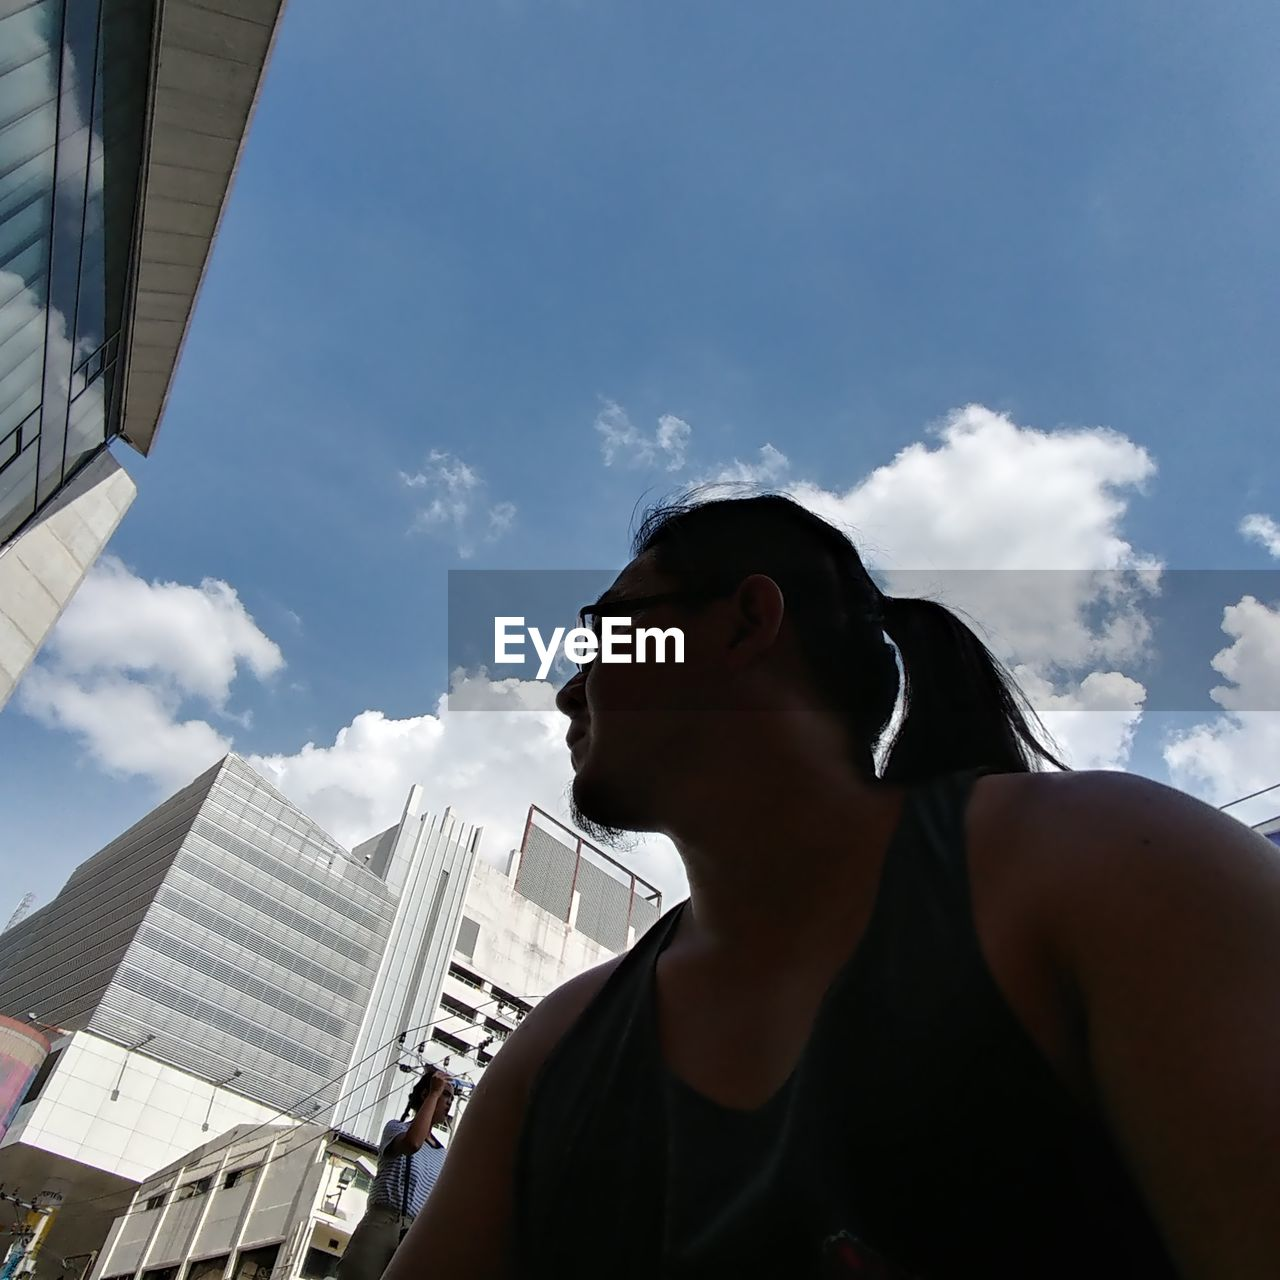 sky, architecture, building exterior, built structure, real people, cloud - sky, day, outdoors, city, one person, low angle view, skyscraper, cityscape, young adult